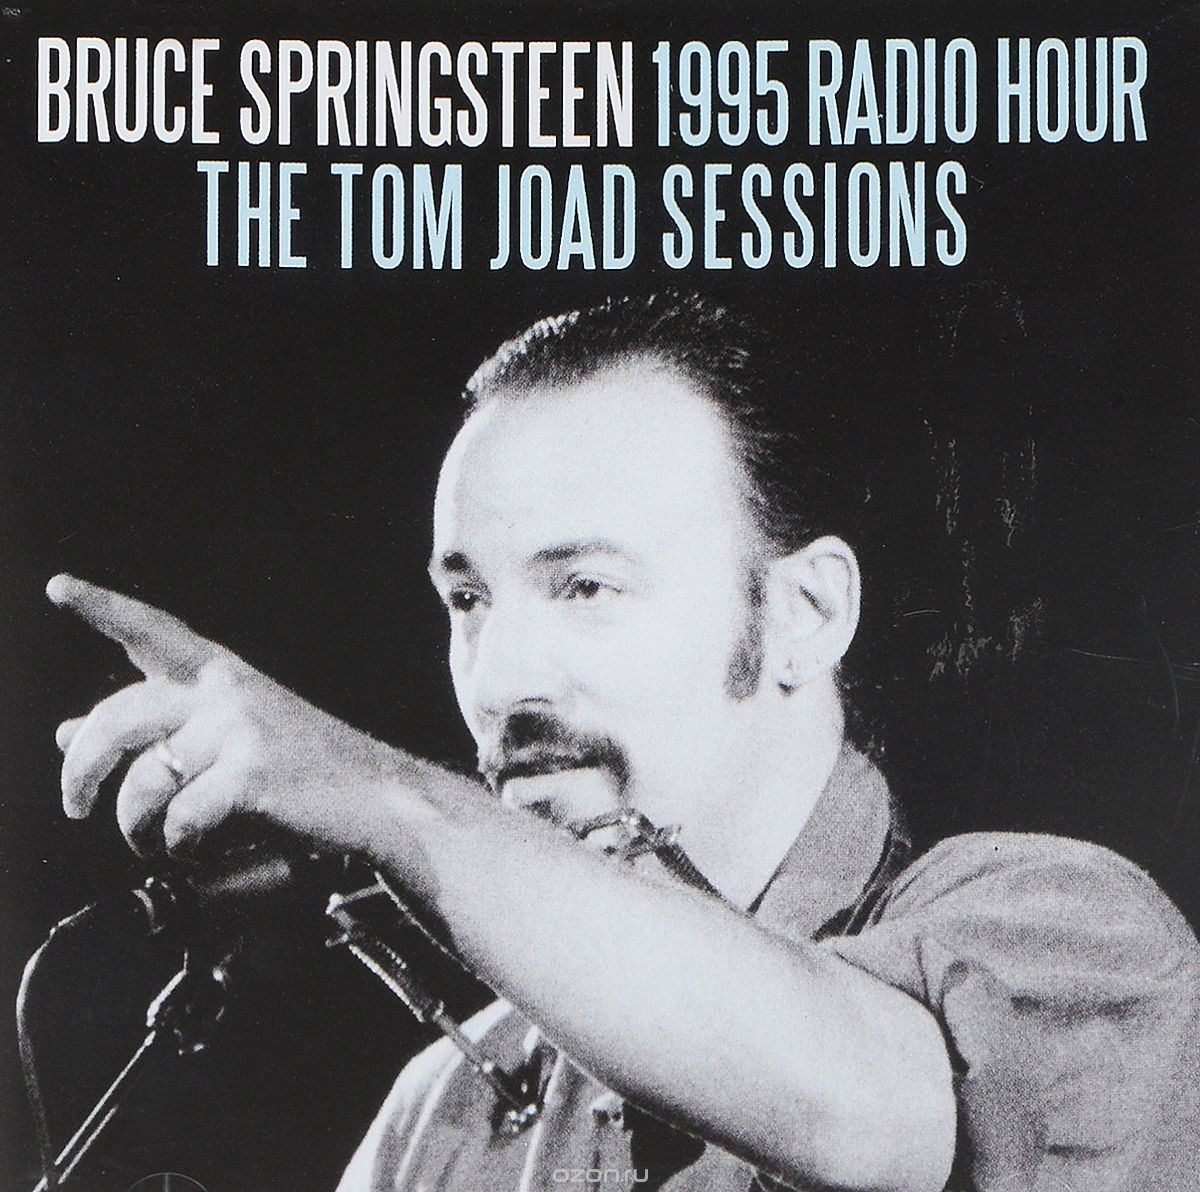 Bruce Springsteen. 1995 Radio Hour